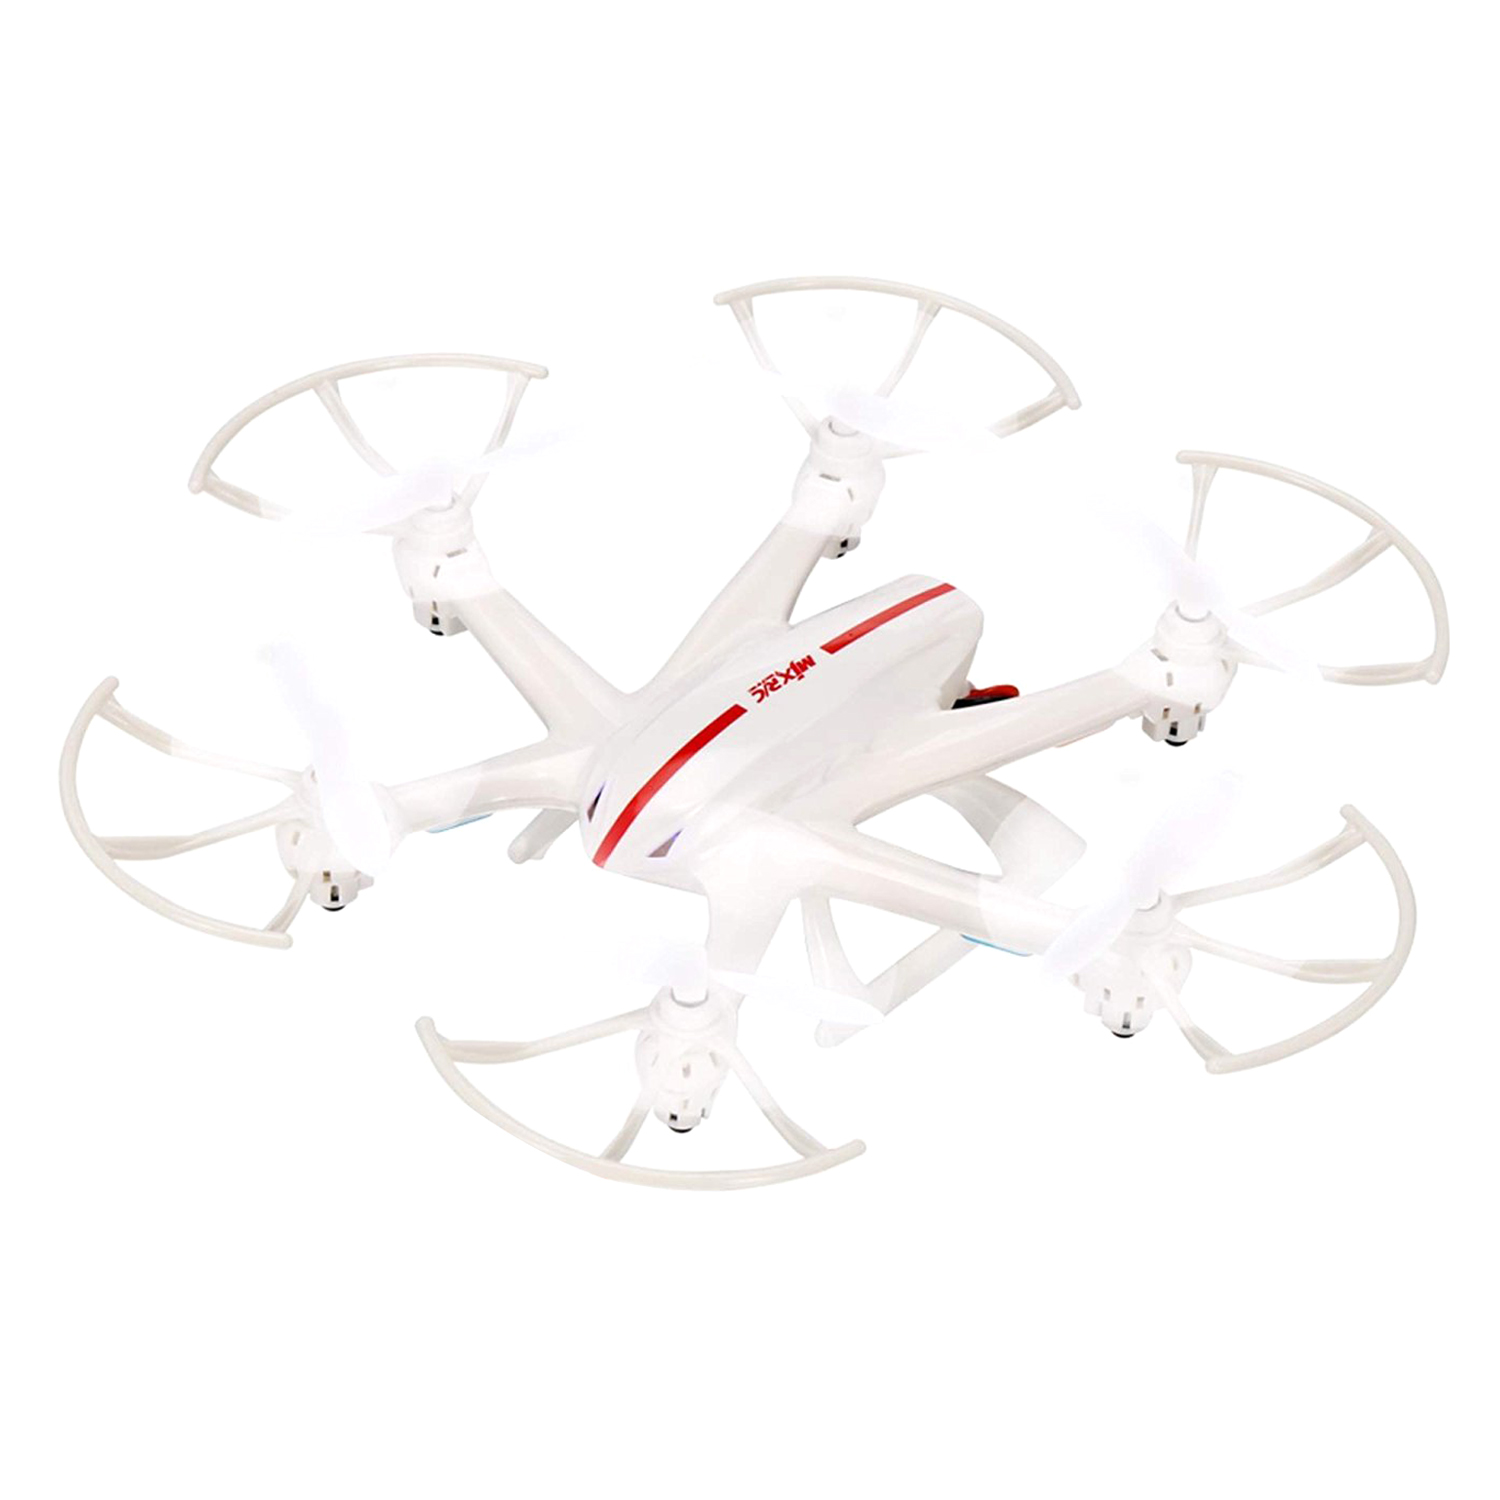 MJX RC Remote Drone Hexacopter X800 2.4G 6 Axis Gyro Auto